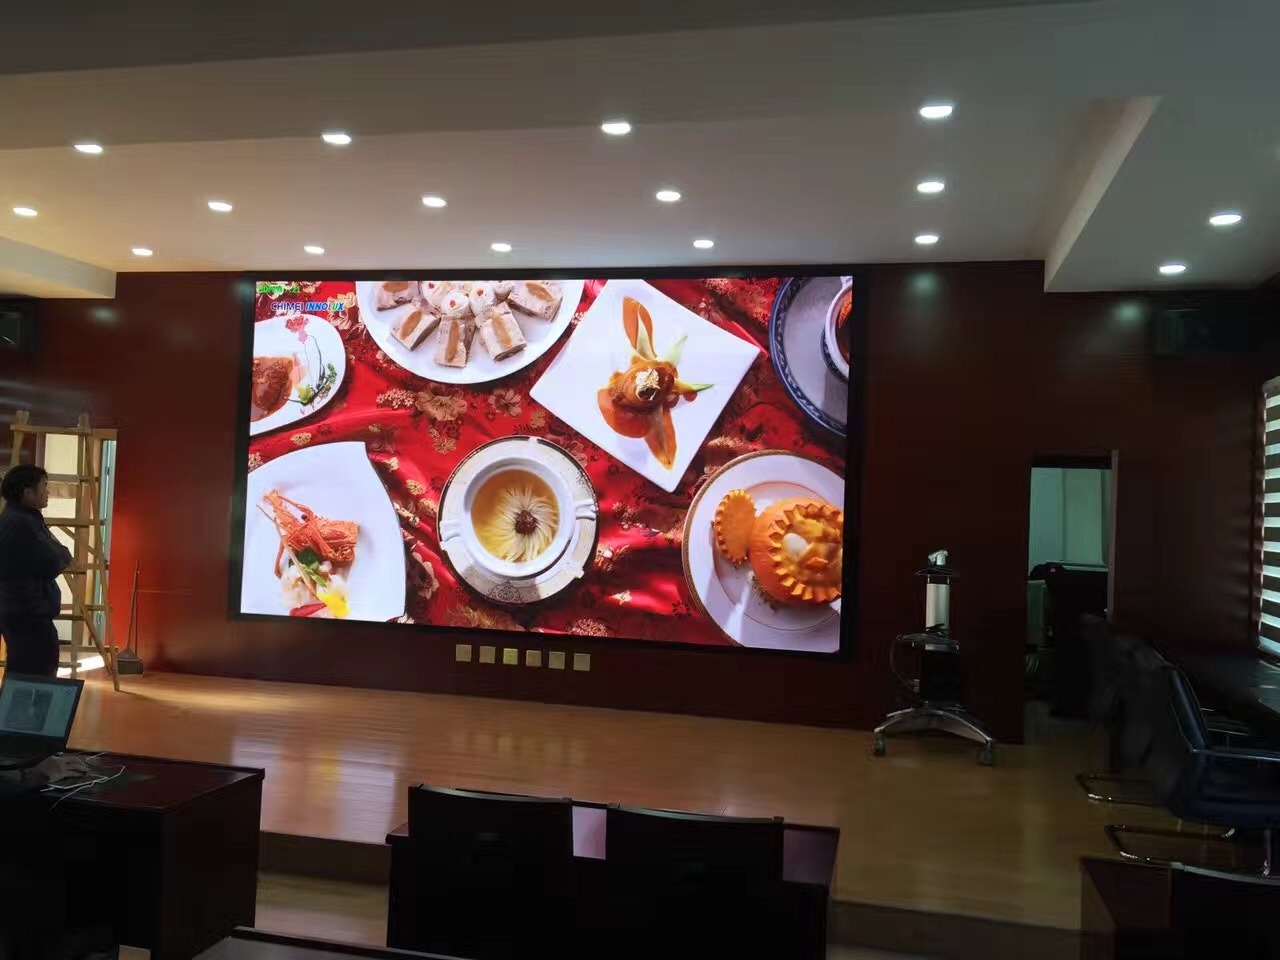 [Hot Item] 4K/8K Resolution 1 44mm Small Pixel Pitch Seamless Large LED  Video Wall